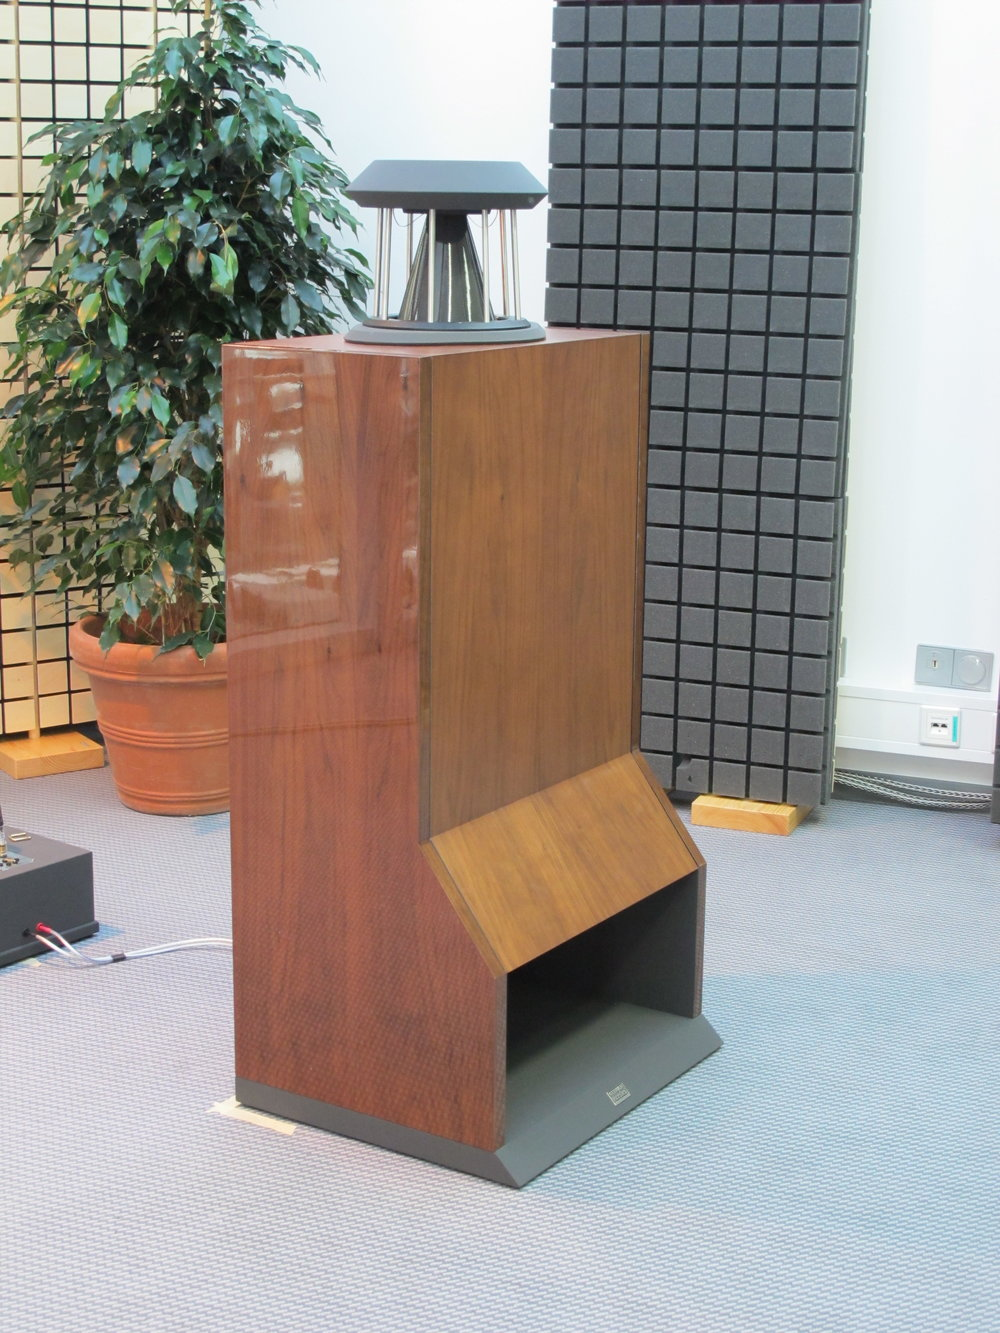 Unicorn MK II loudspeakers in American cherry | Munich Hi-Fi Show 2012, Germany